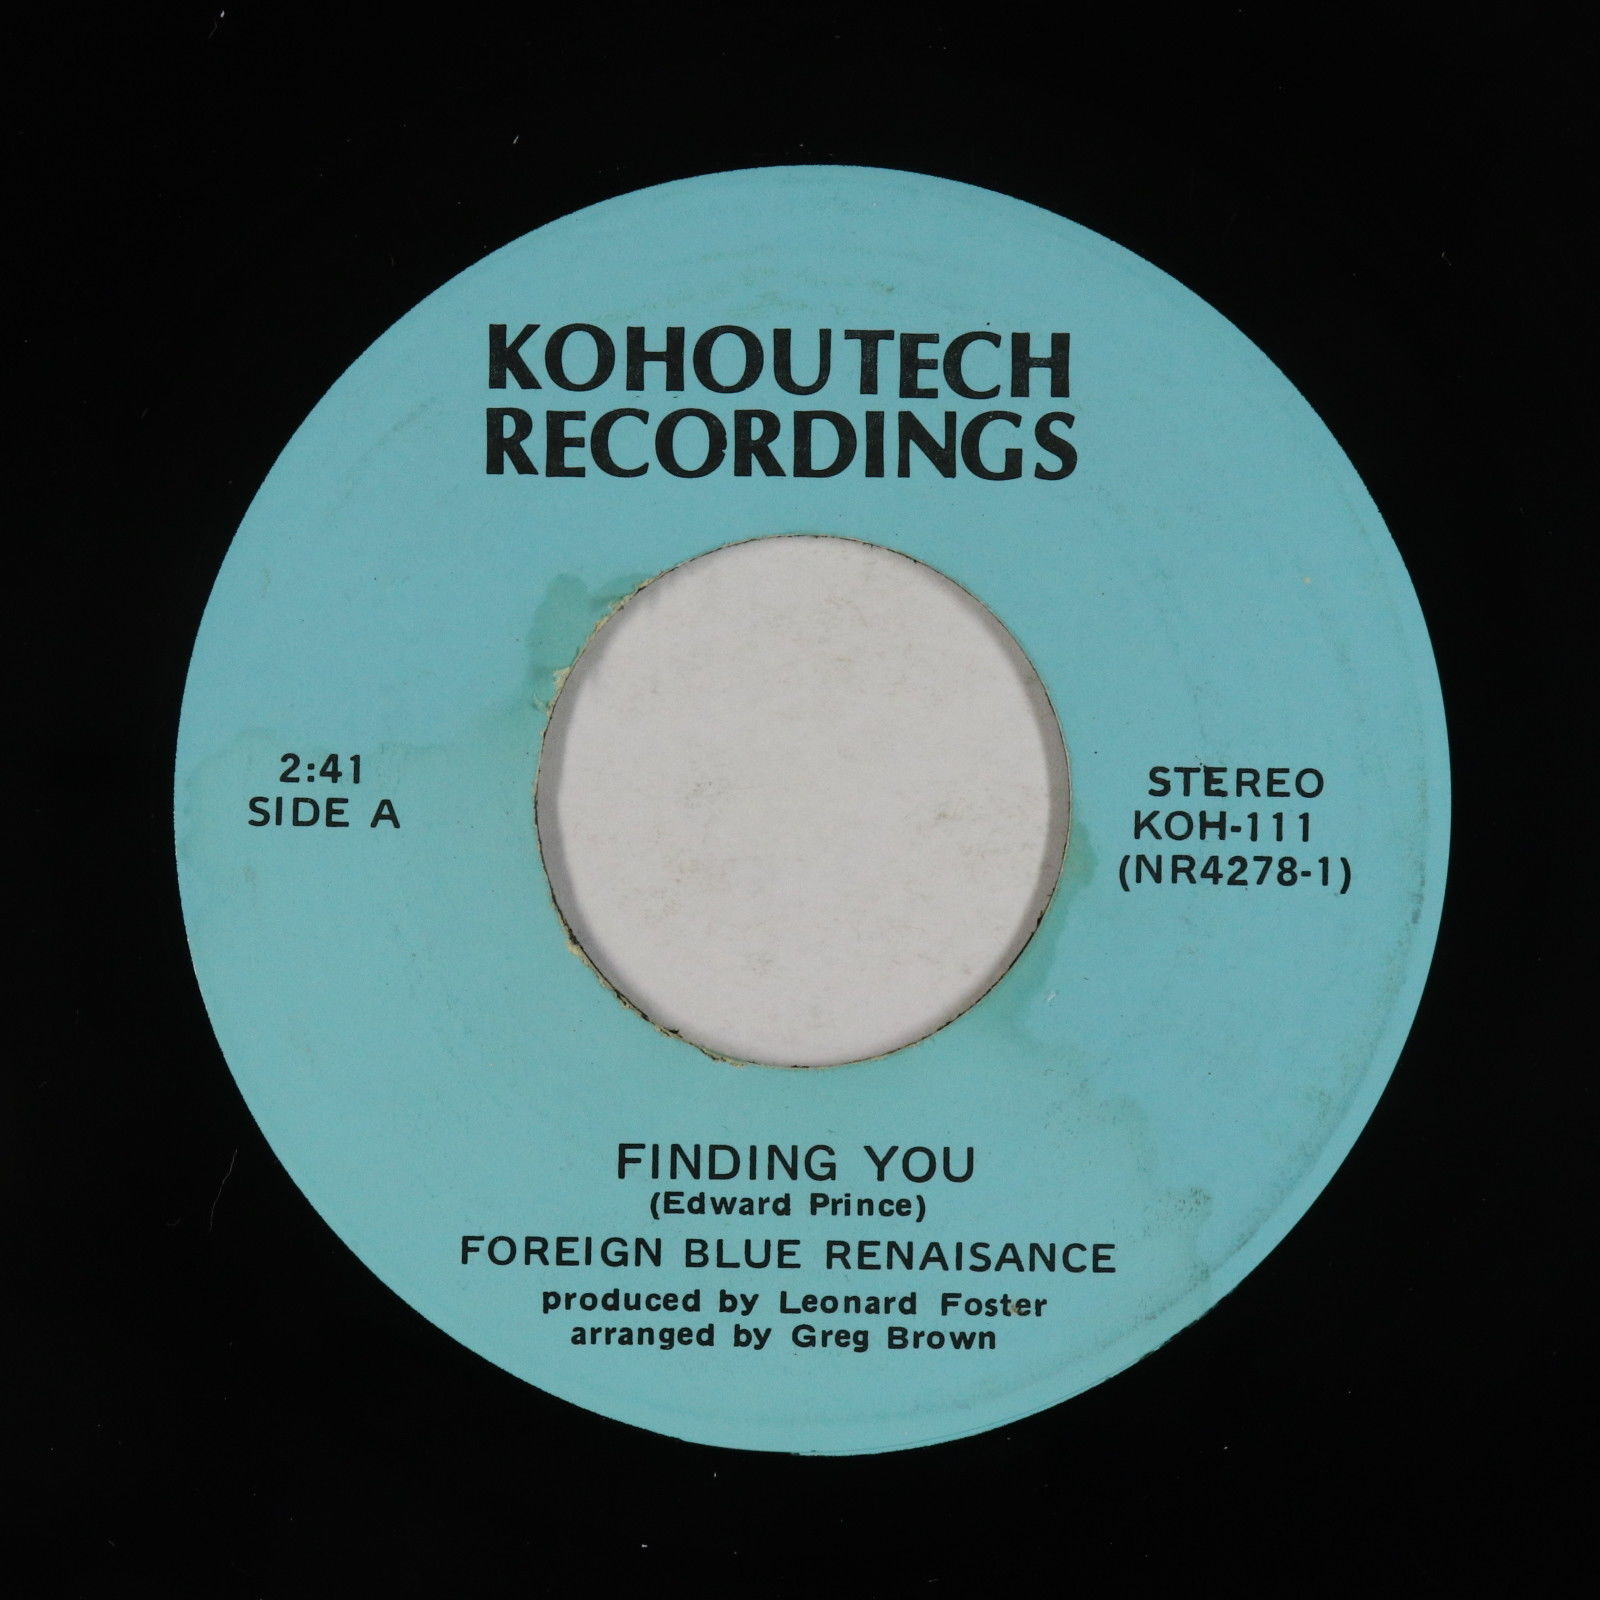 Northern Soul Funk 45 - Foreign Blue Renaisance - Finding You - Kohoutech - VG+